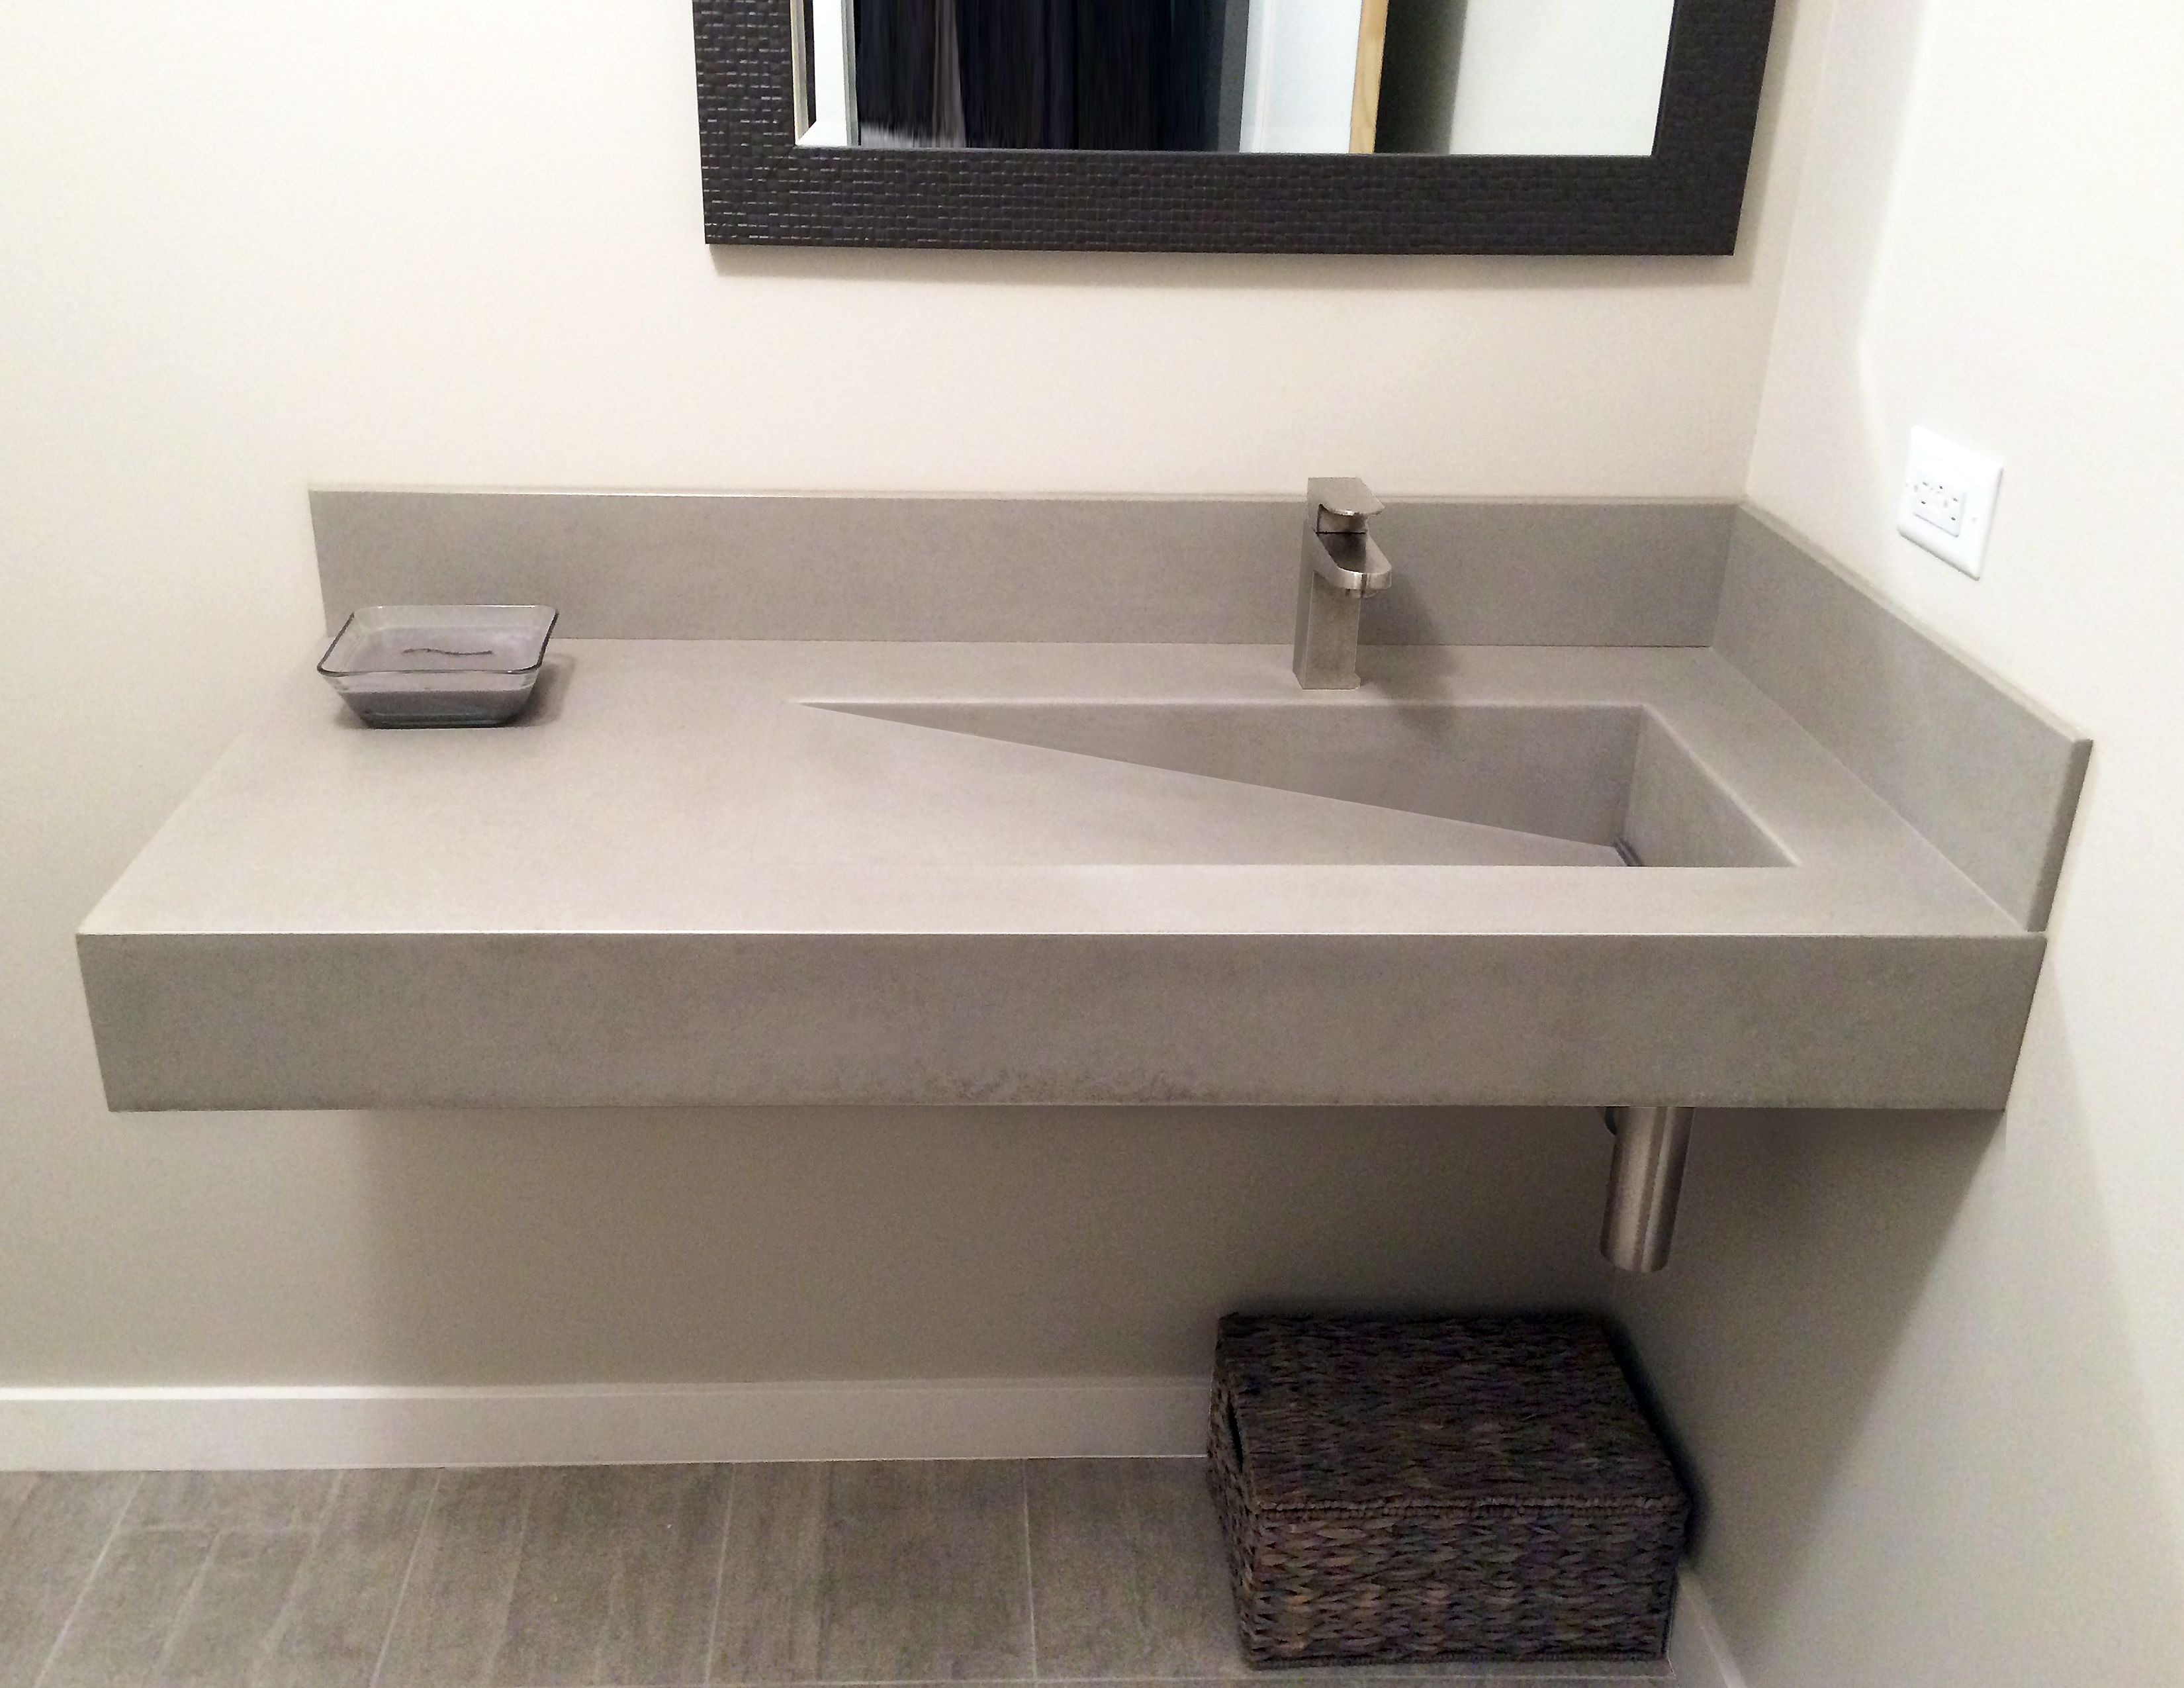 concrete kitchen sink nutri wall hung bathroom with a custom ramp